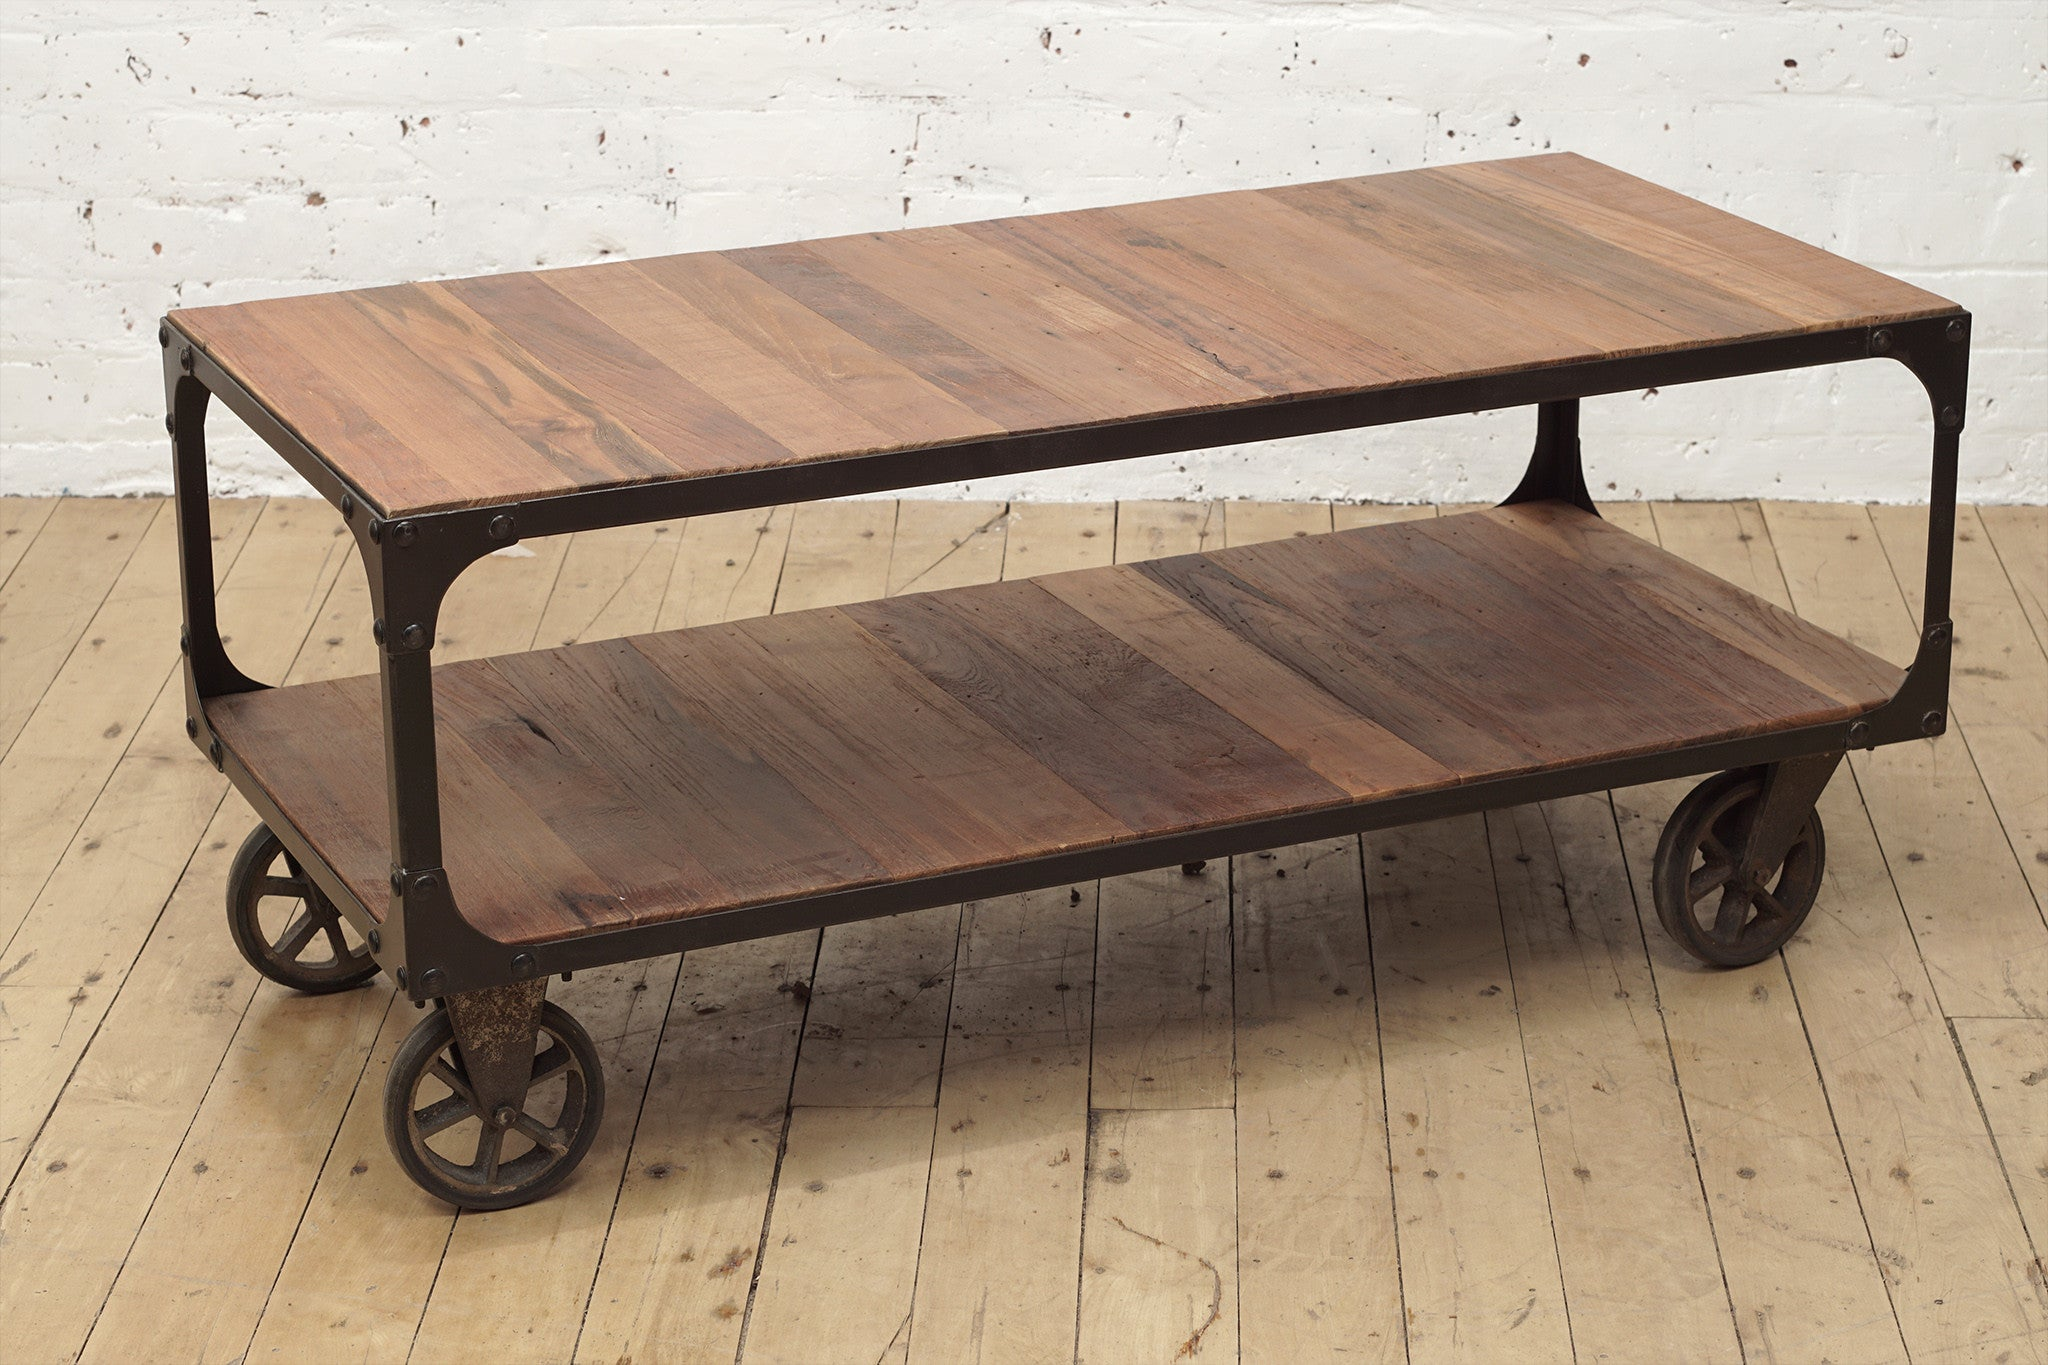 Caravan Coffee Table – from the source